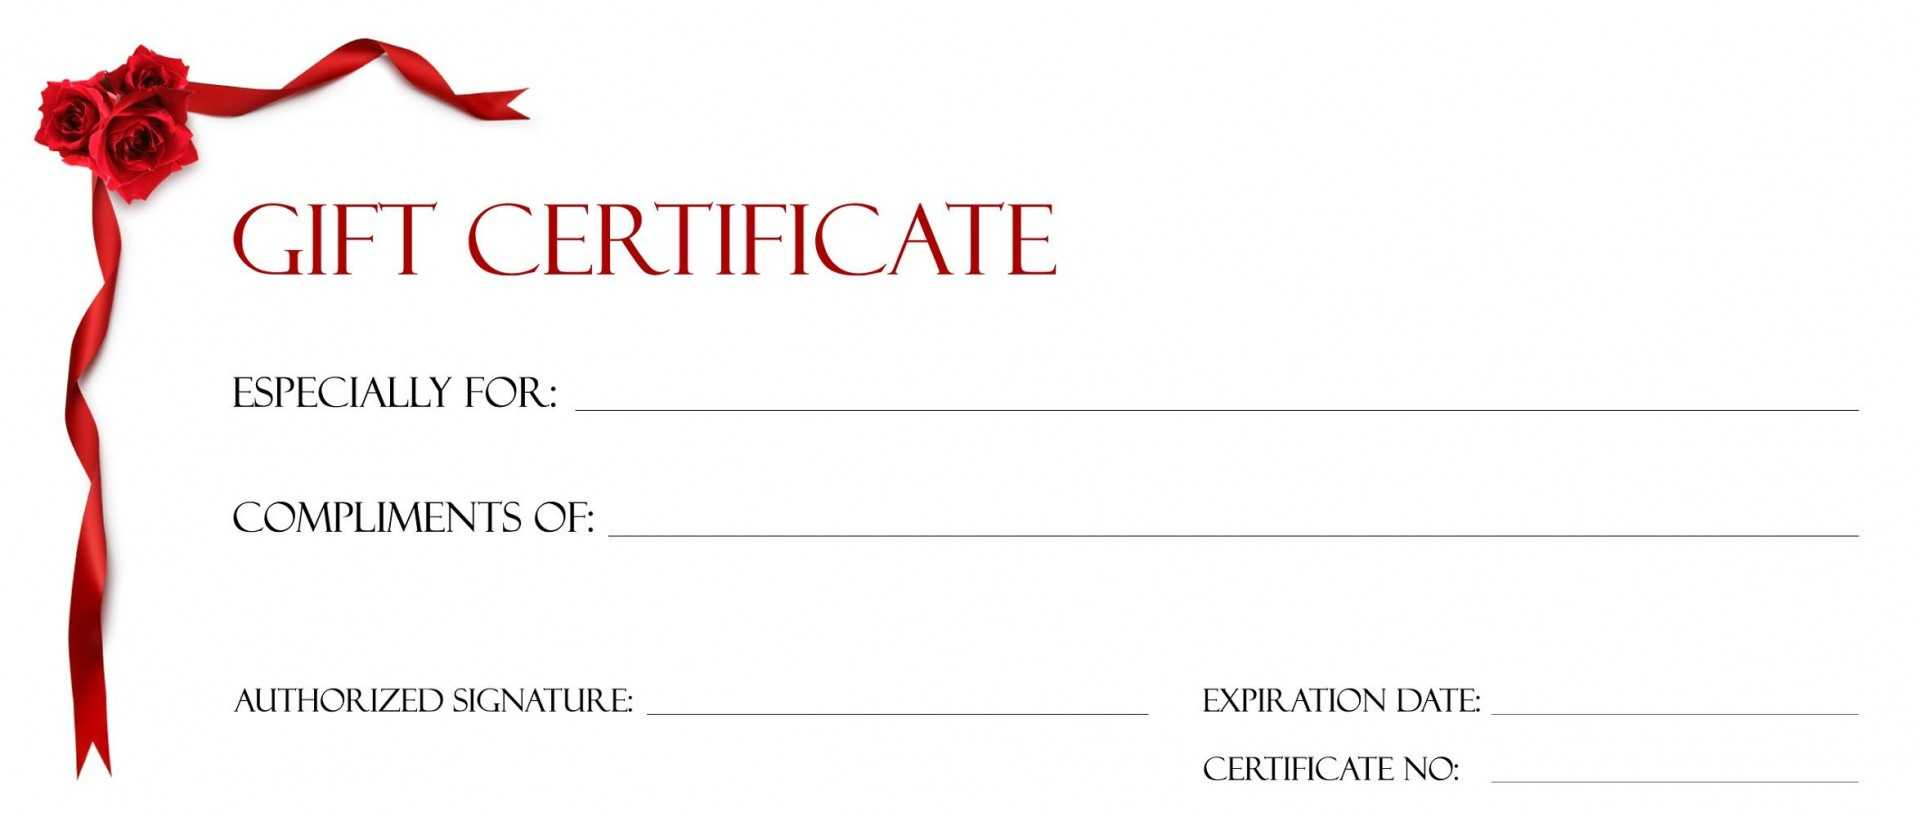 021 Gift Certificate Templates Free Template Ideas Printable Throughout Custom Gift Certificate Template